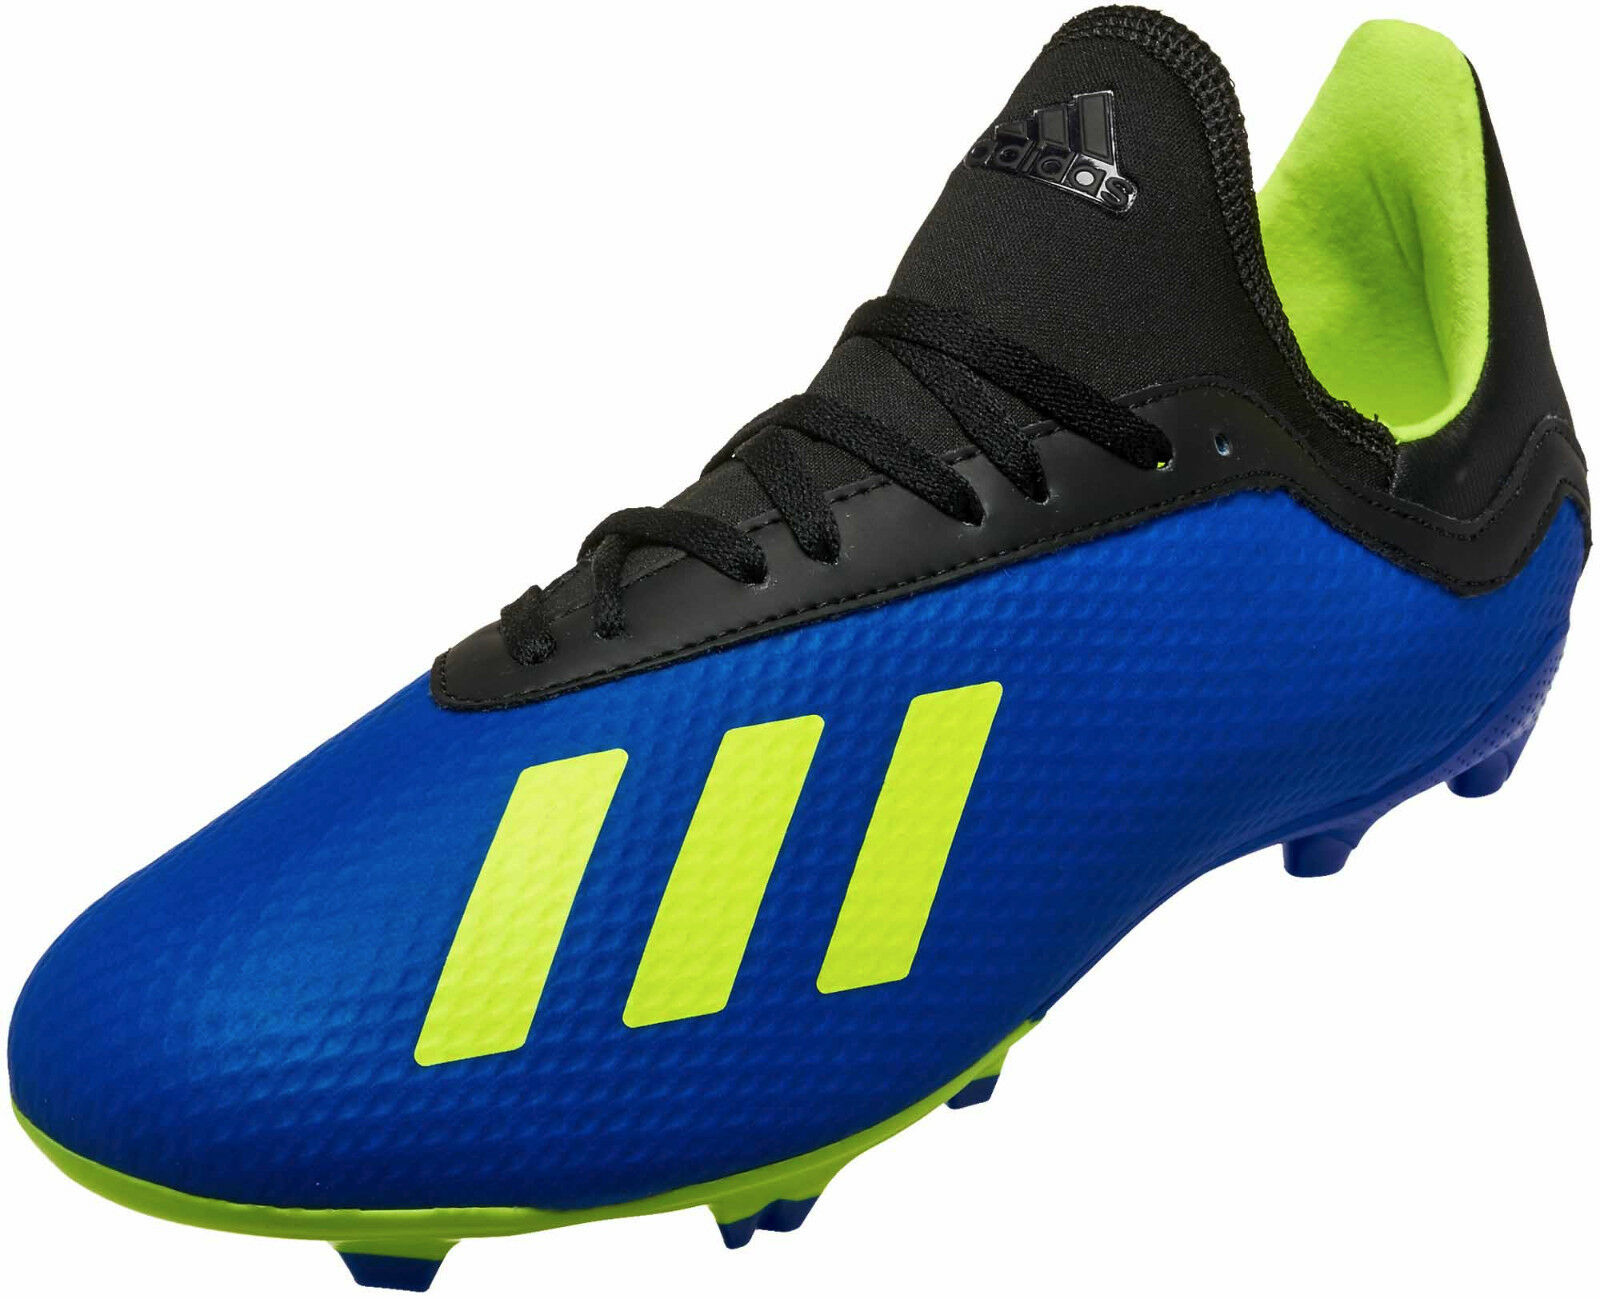 bb291c971c0 Adidas Kids shoes Boys Football Cleats X 18.3 Firm FG Soccer Boots New  DB2416